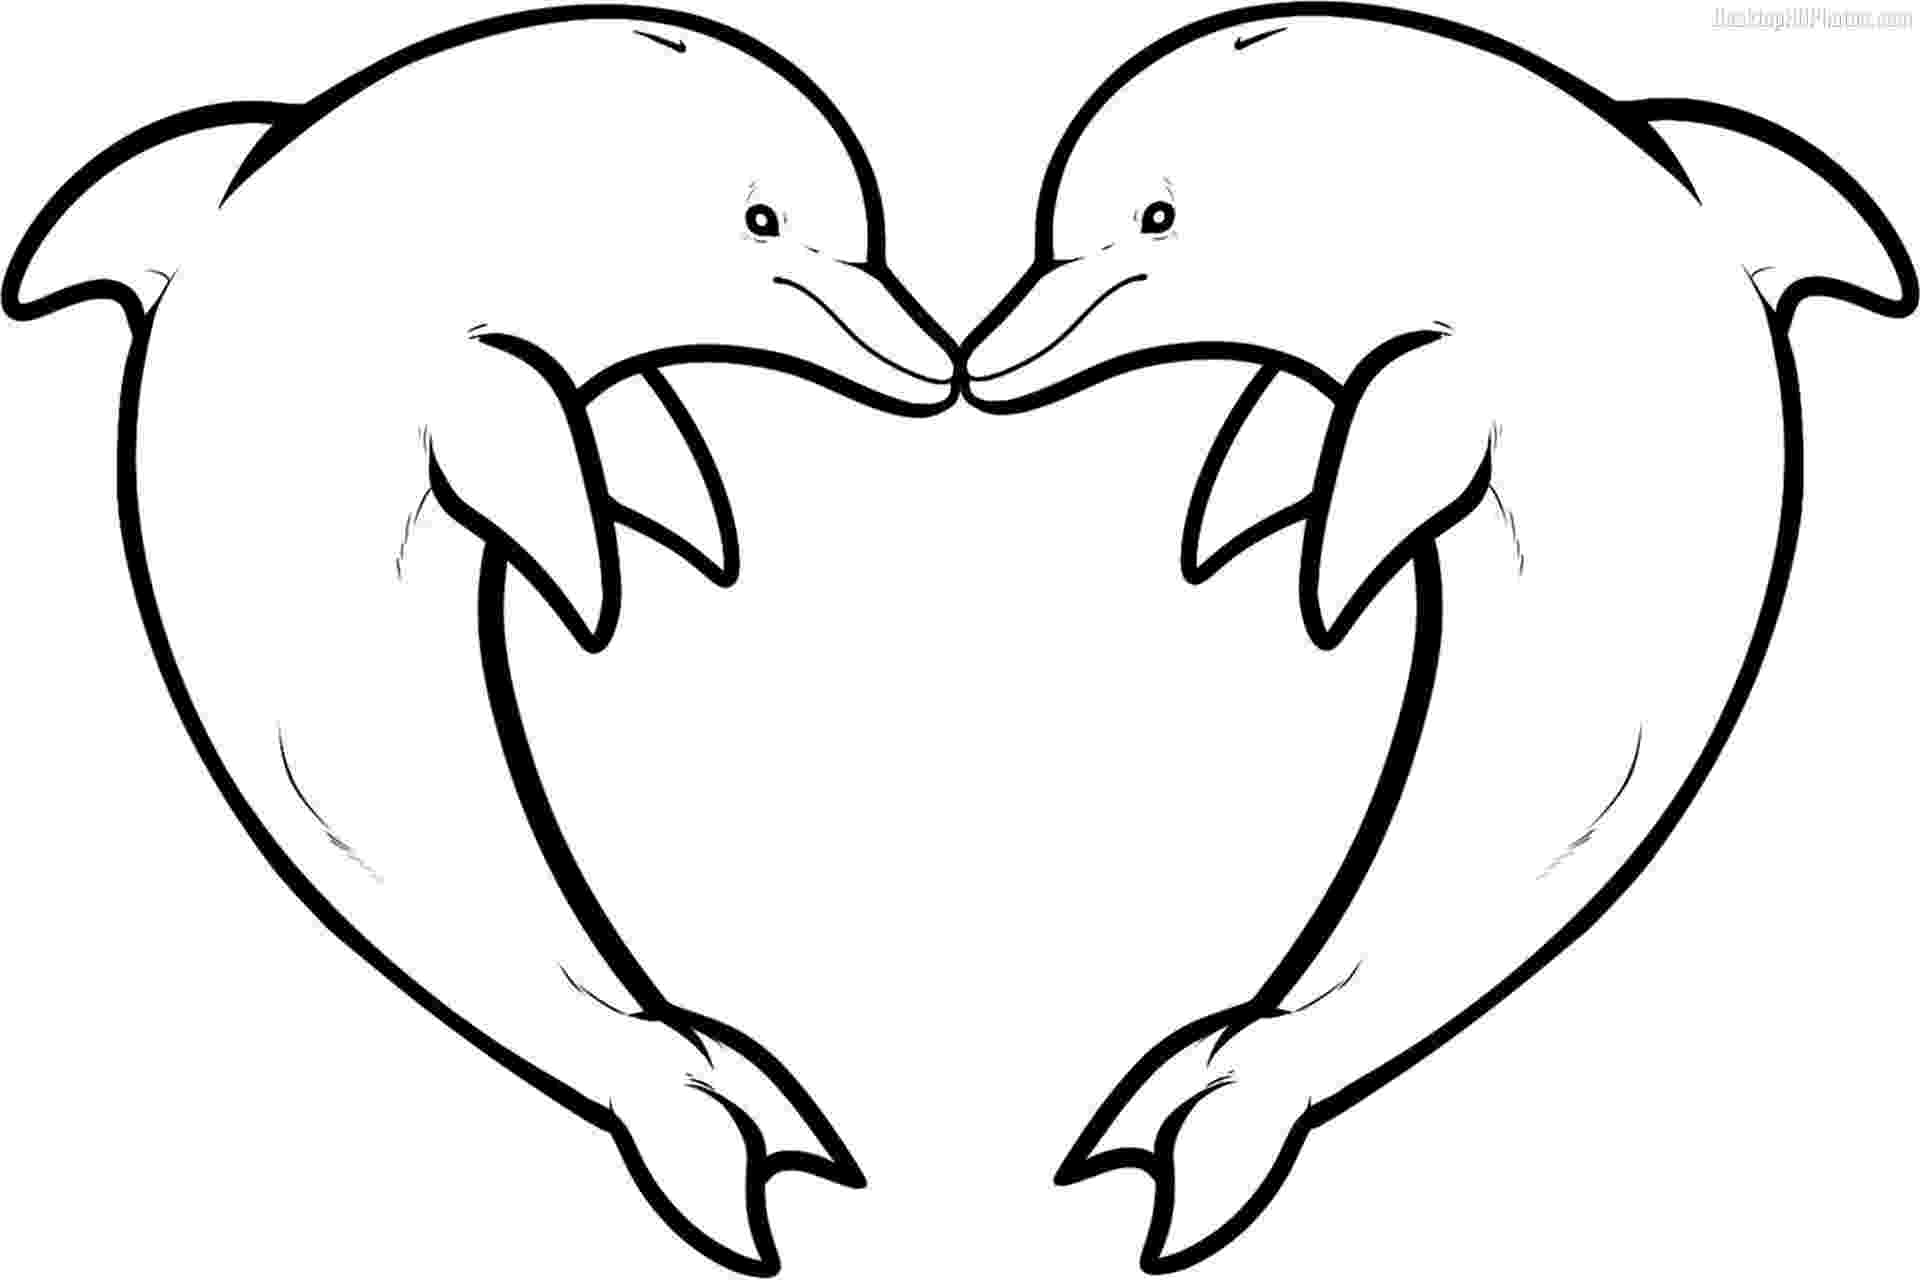 picture of dolphins to color free printable dolphin coloring pages for kids picture to of color dolphins